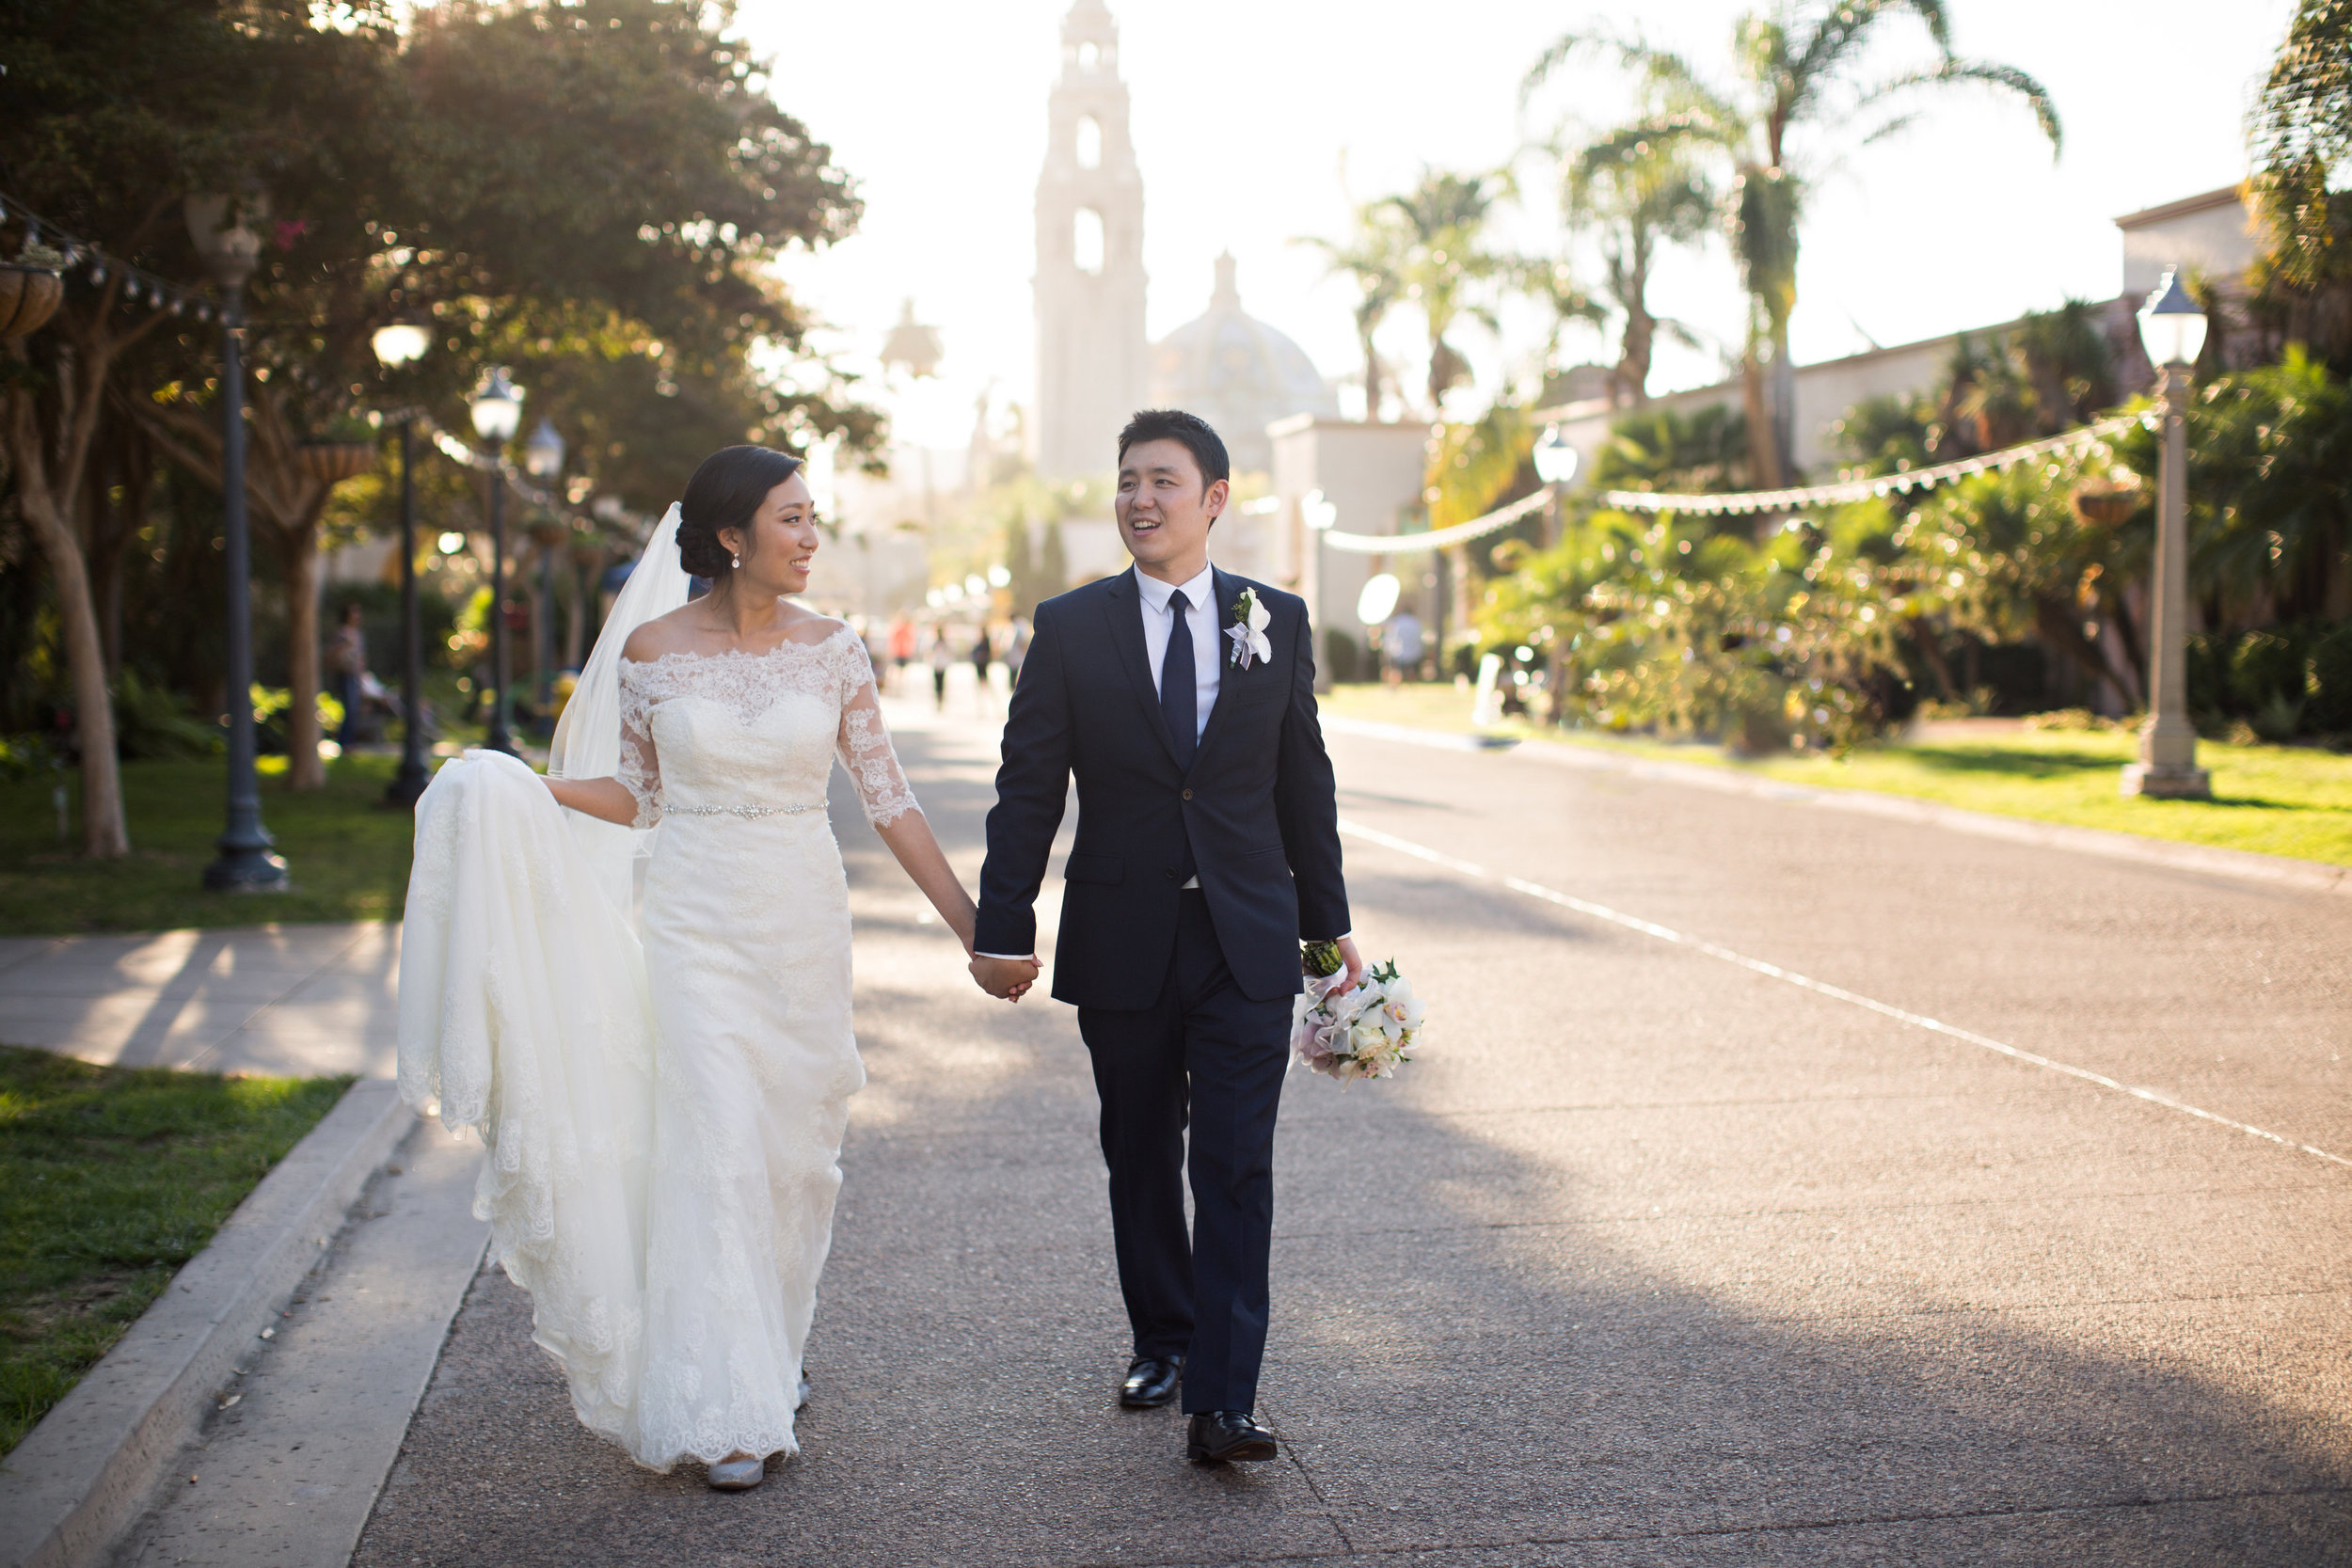 Angie & John - Museum of Photographic Arts at Balboa Park - San Diego, CA